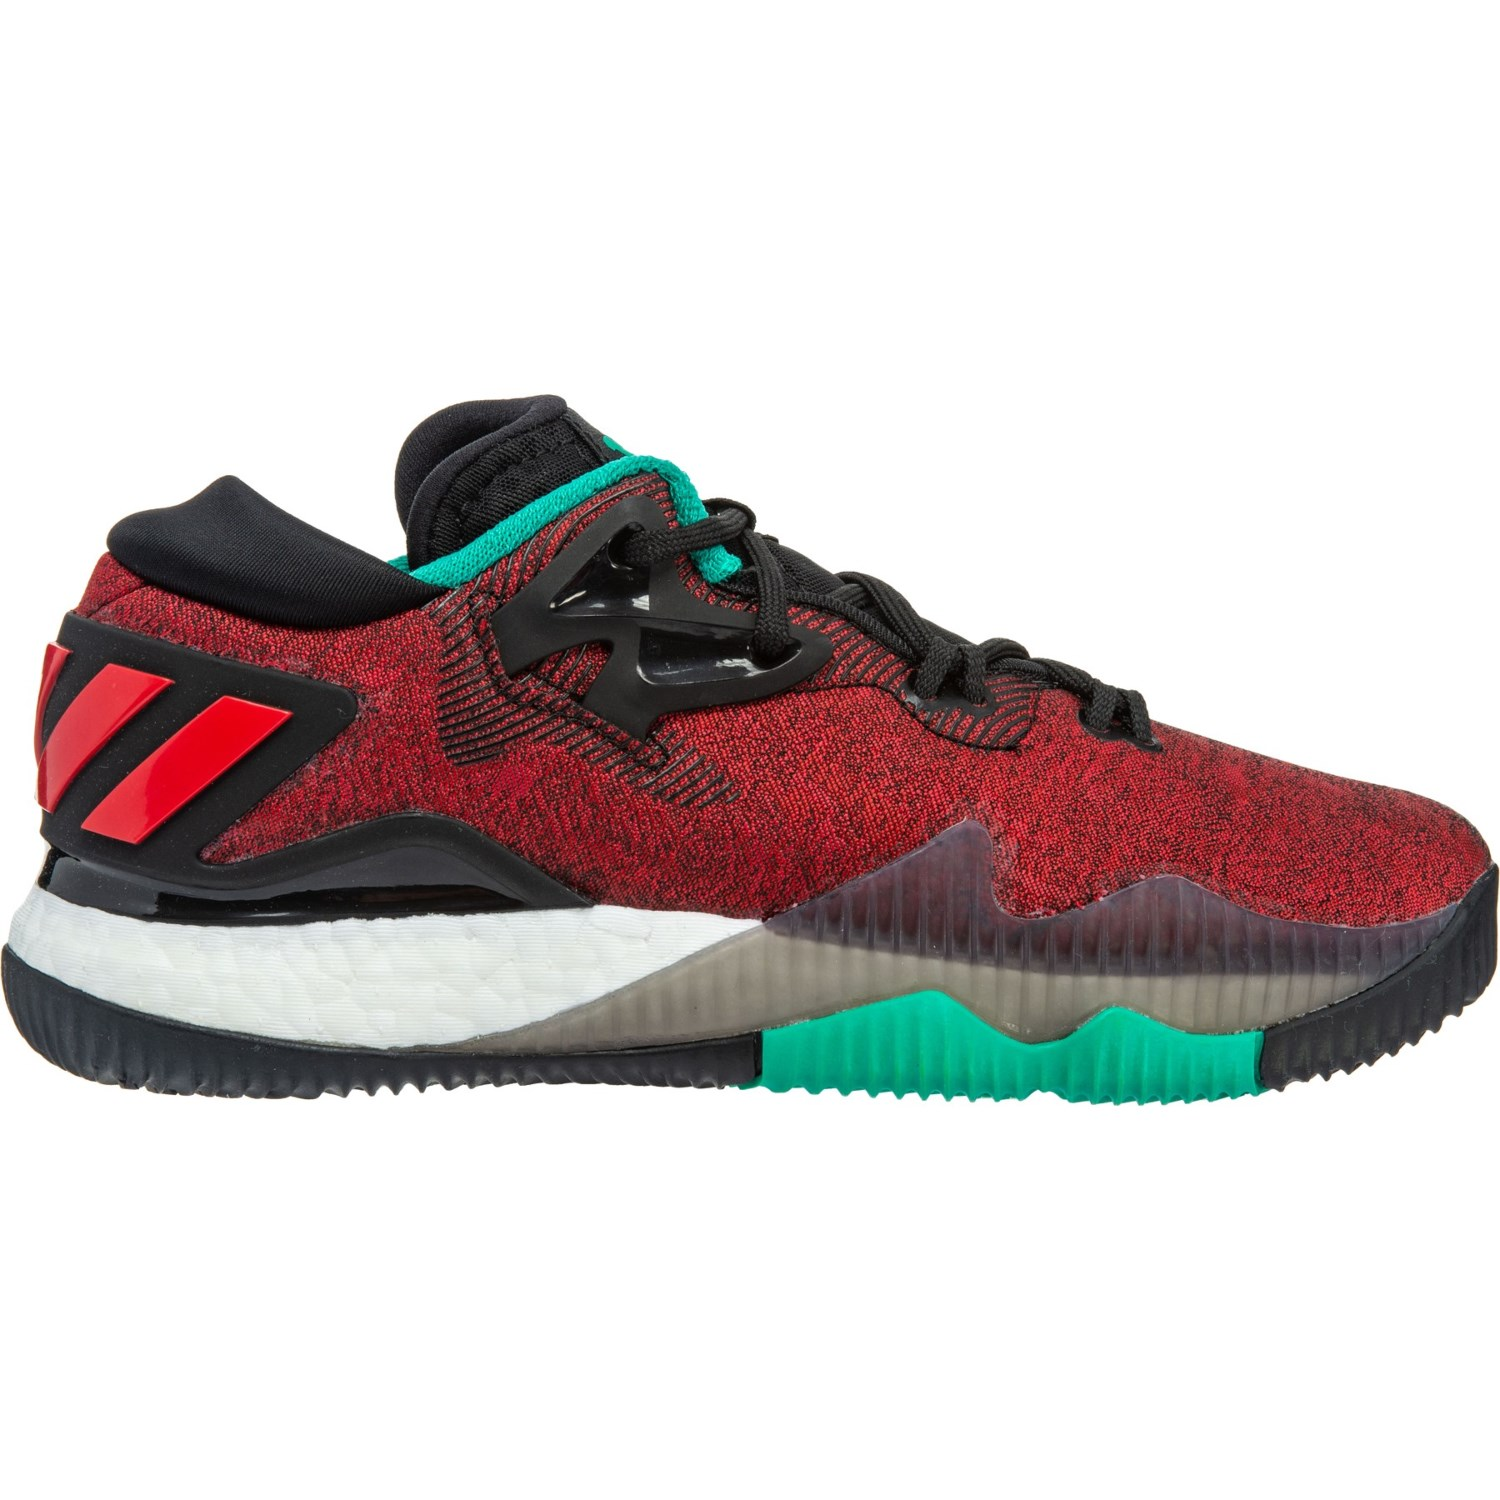 d6a4f5afac412 adidas Crazylight Boost Low Basketball Shoes (For Big Kids) - Save 36%